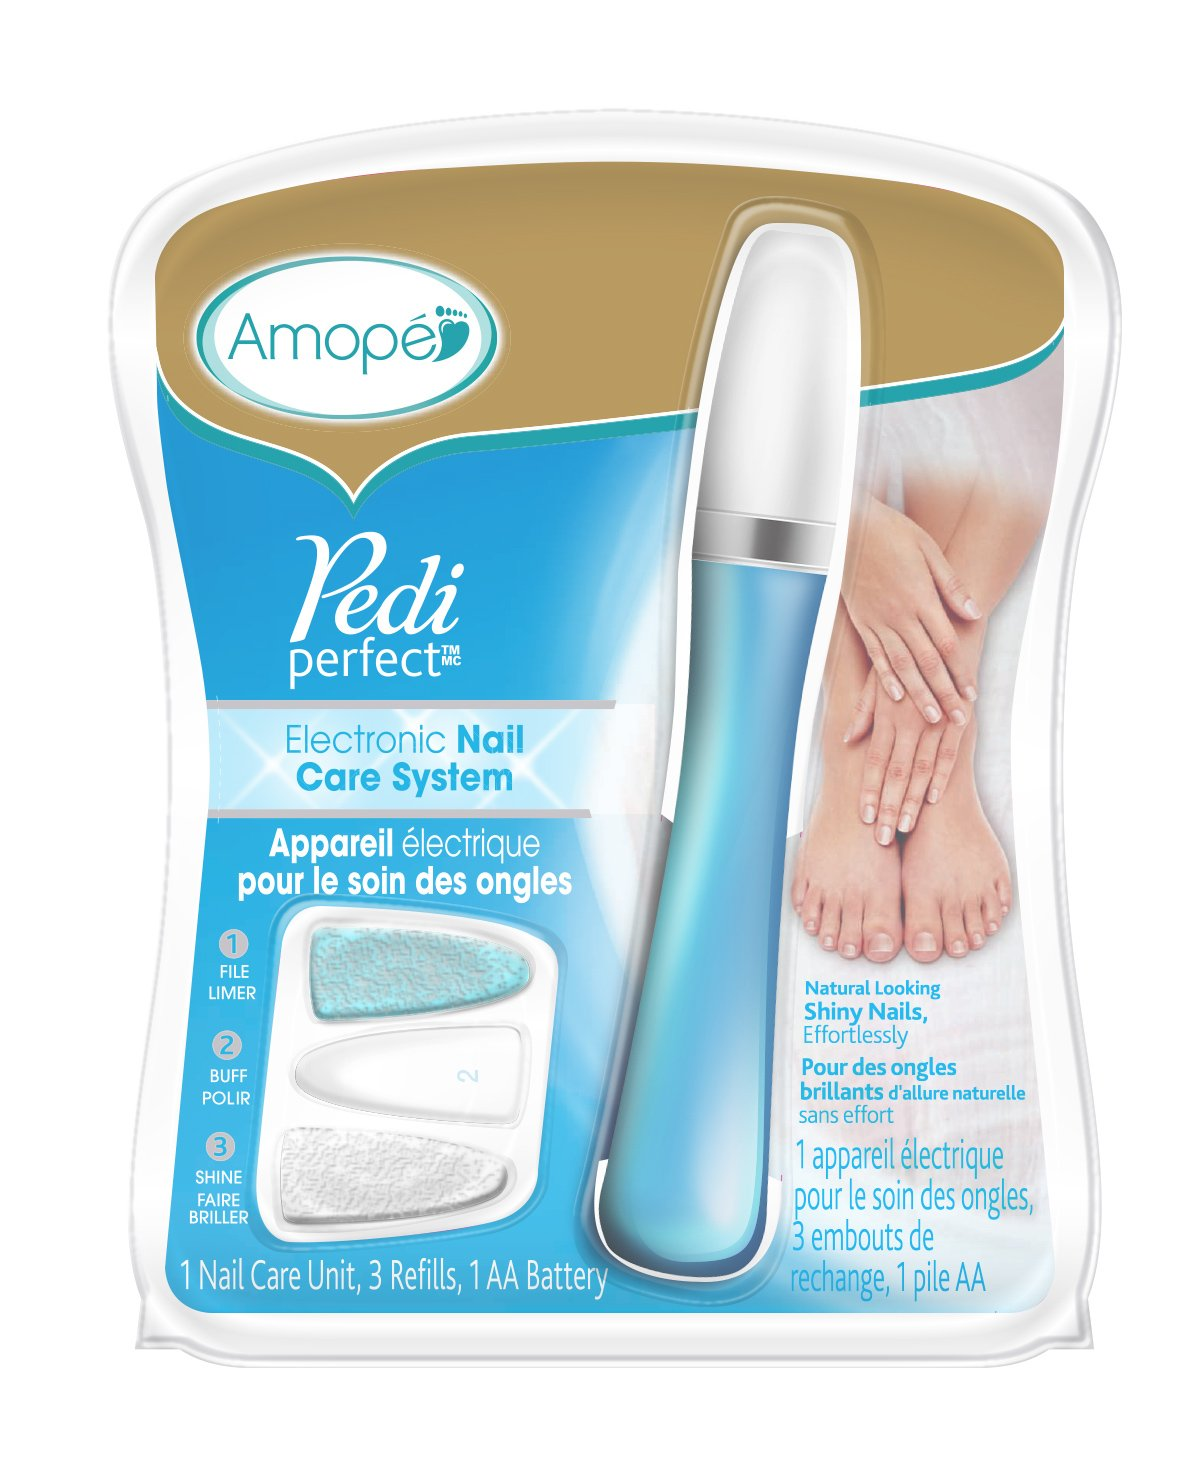 Amope Pedi Perfect Electronic Nail Care System-Pedicure/Manicure-File, Buff and Shine Nails Effortlessly-3 Refills and AA Battery Included